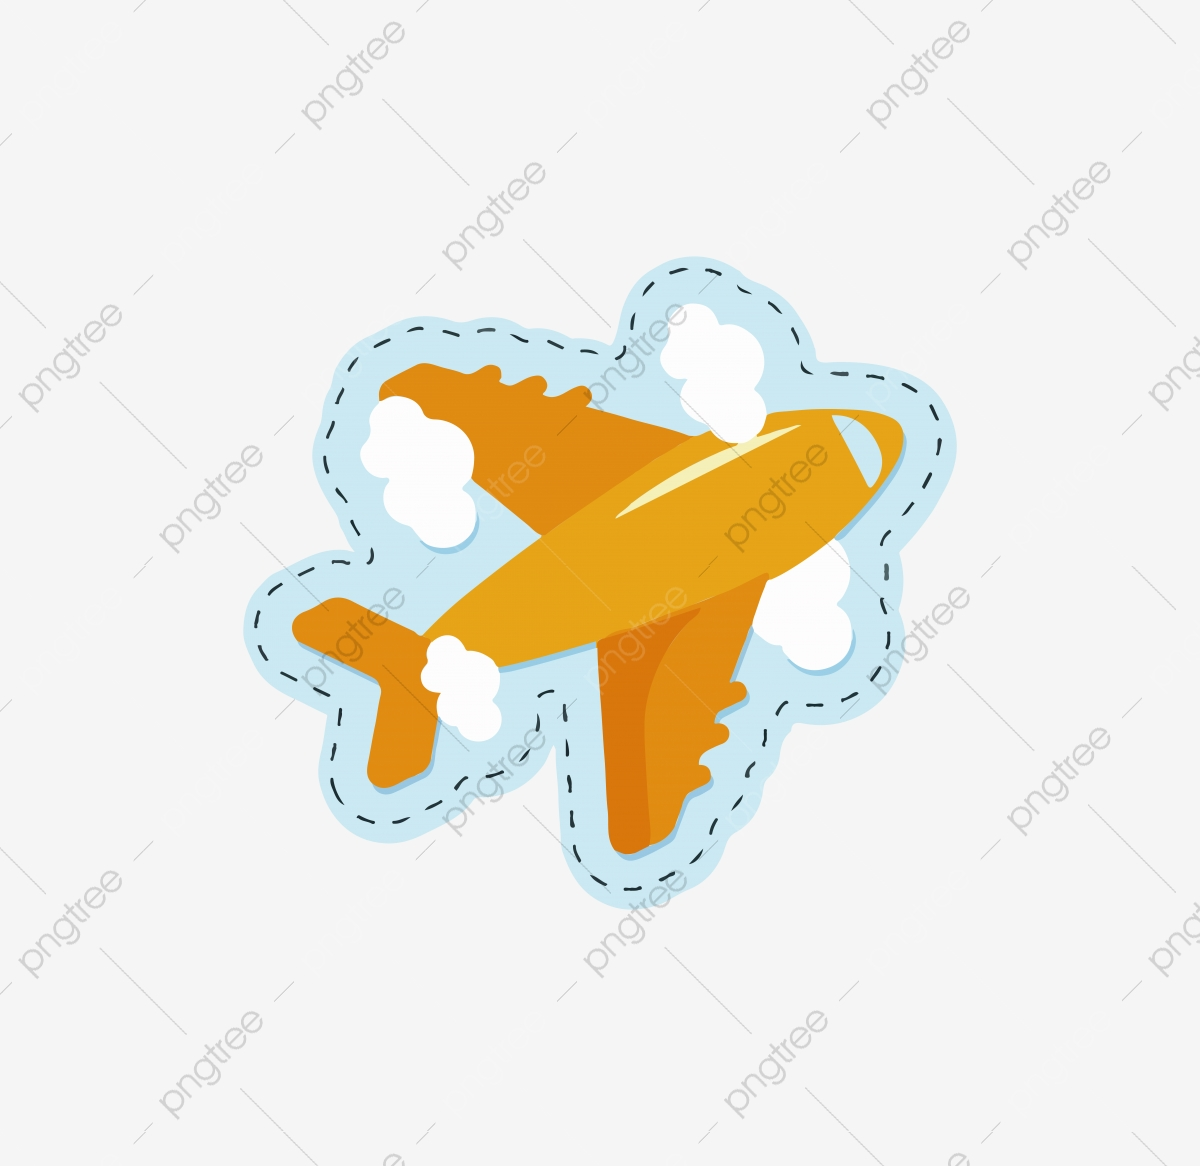 Travel Tool Plane Cartoon Cute Airplane Cartoon Plane Airplane